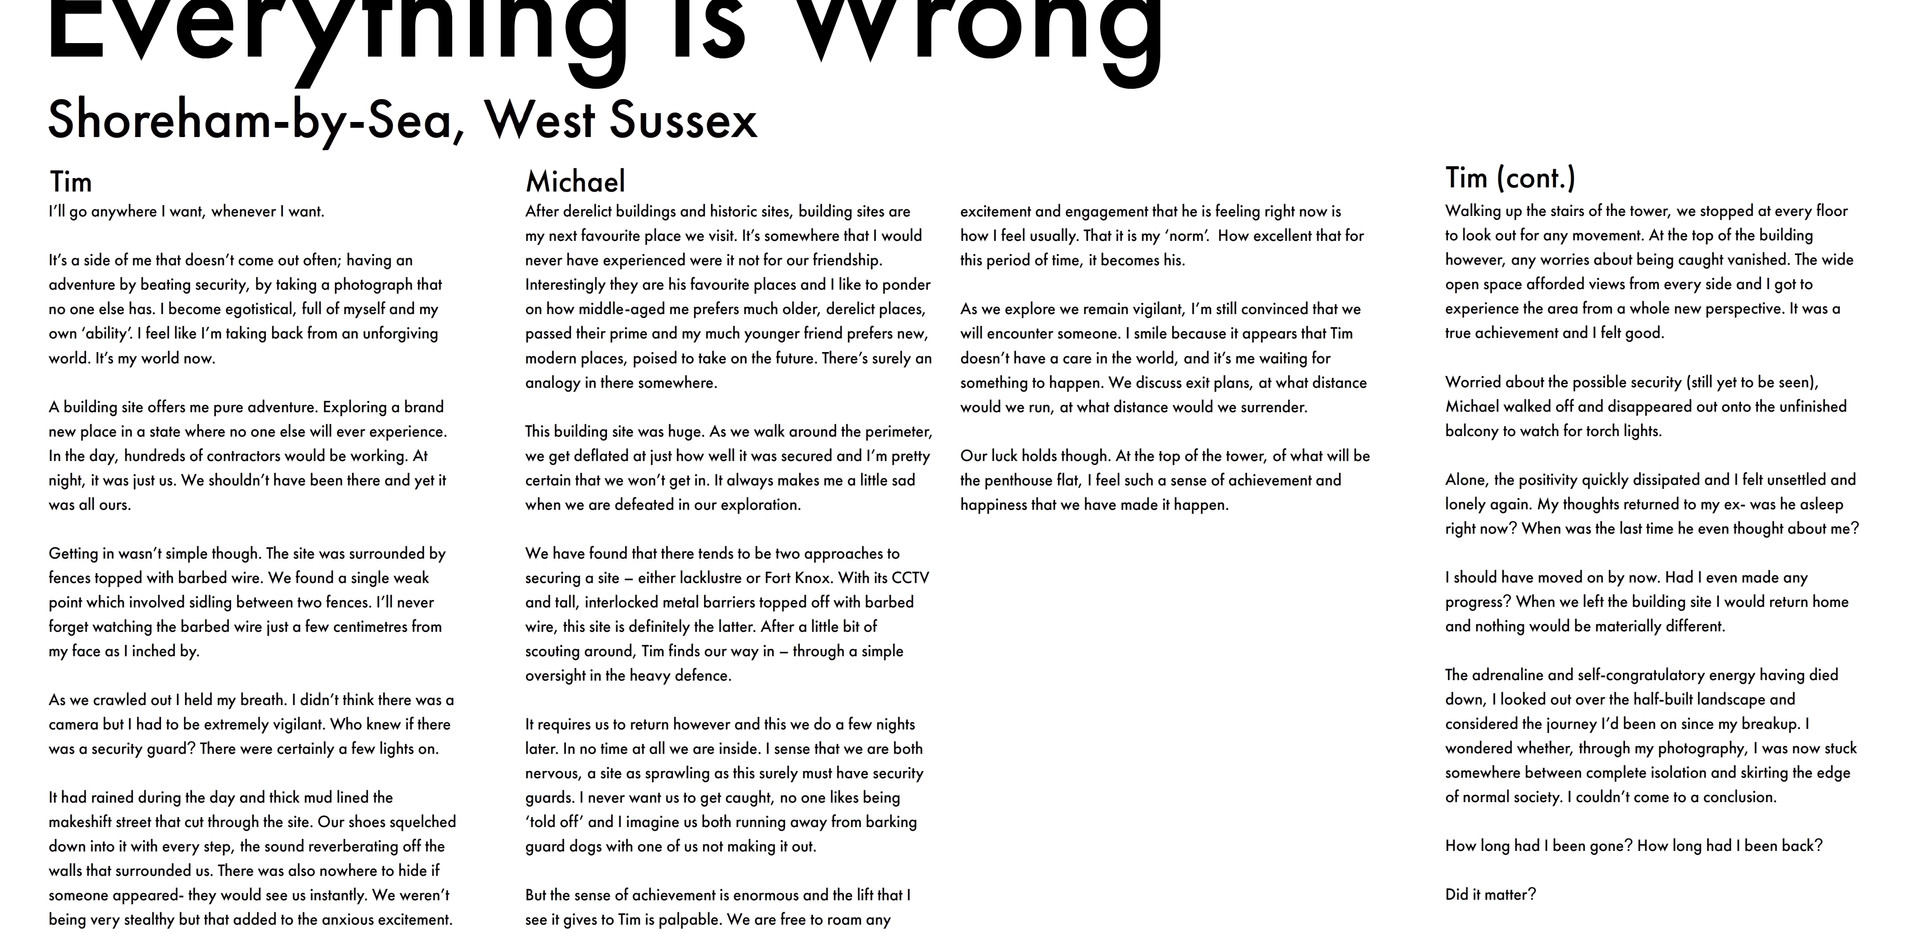 Everything Is Wrong Text